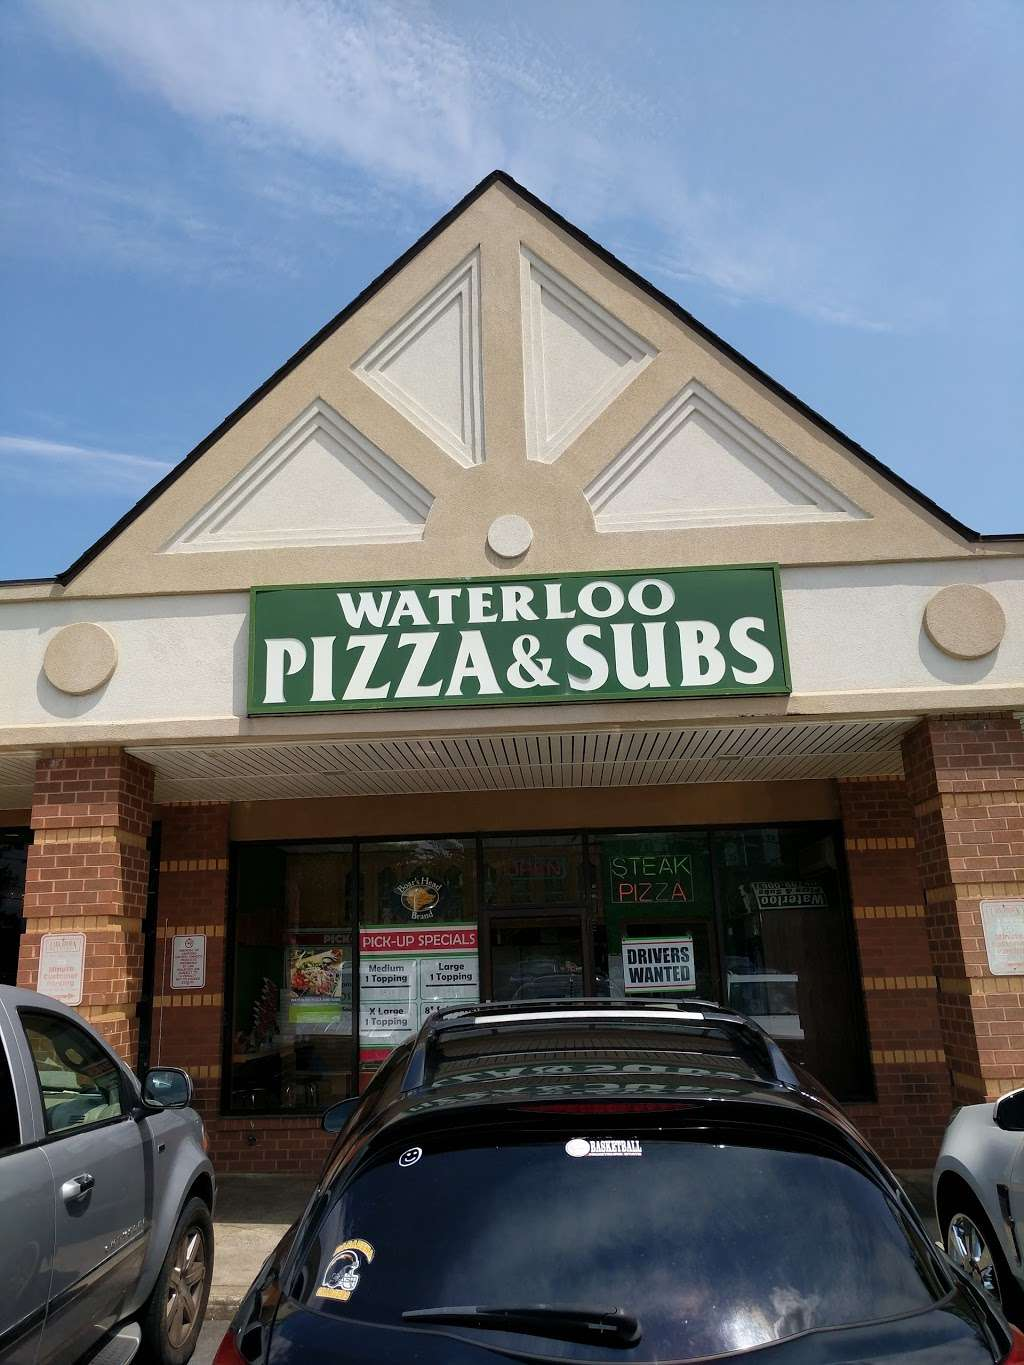 Waterloo Pizza & Subs - meal delivery  | Photo 2 of 9 | Address: 6590 Old Waterloo Rd, Elkridge, MD 21075, USA | Phone: (410) 799-0067